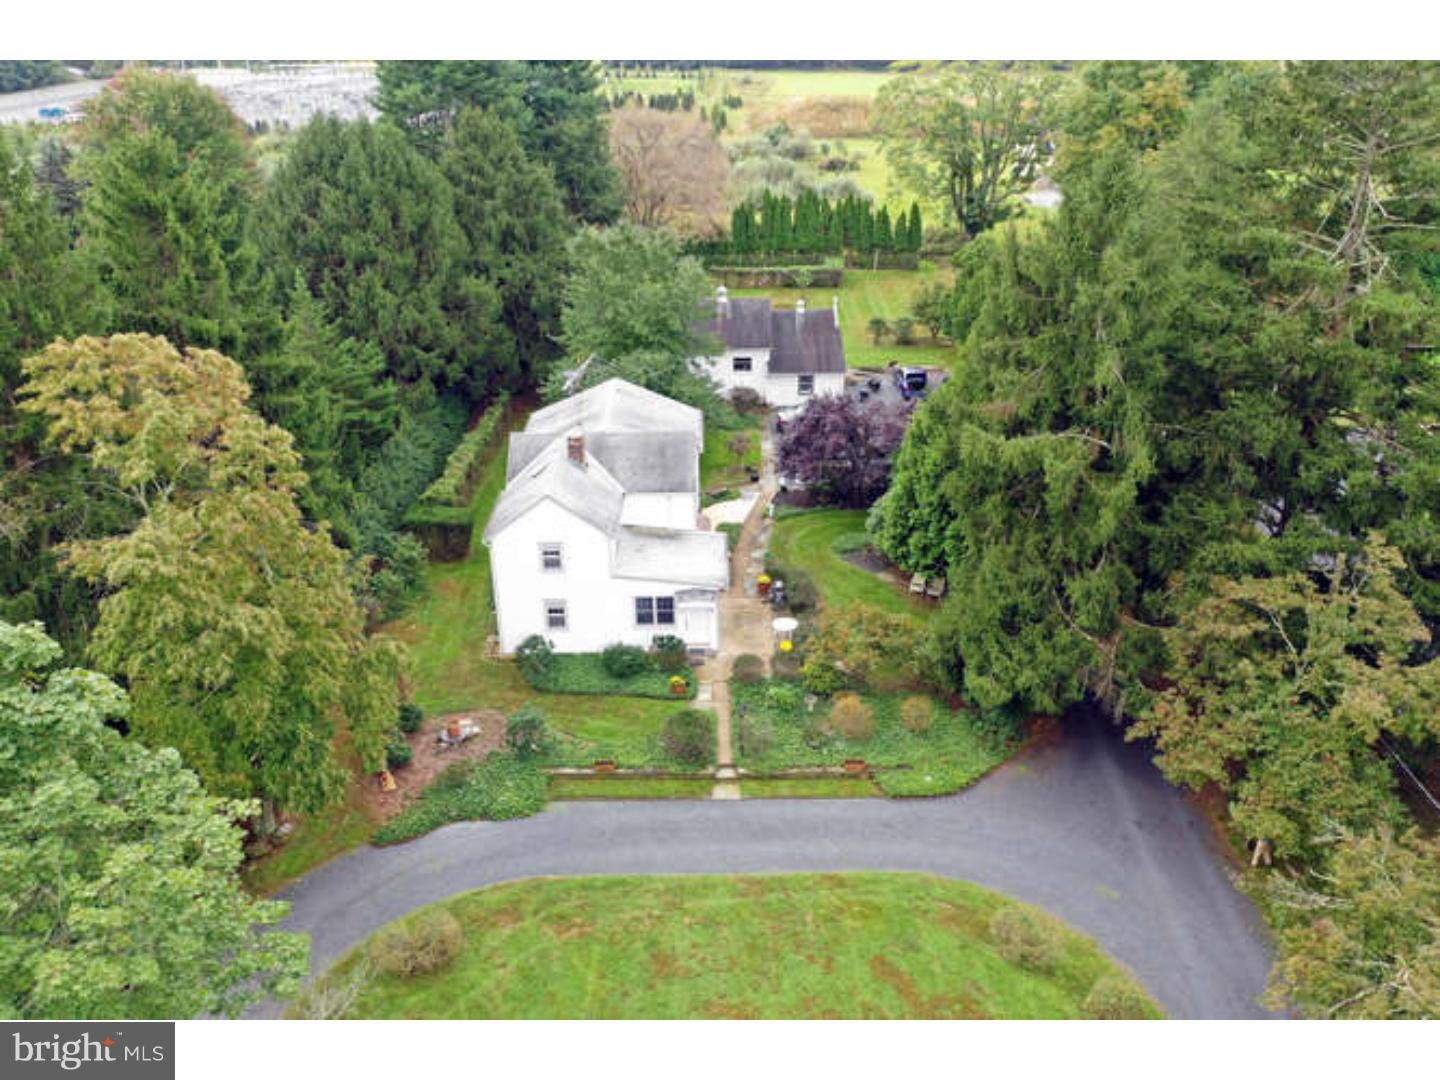 963 RIDGE ROAD, MONMOUTH JUNCTION, NJ 08852